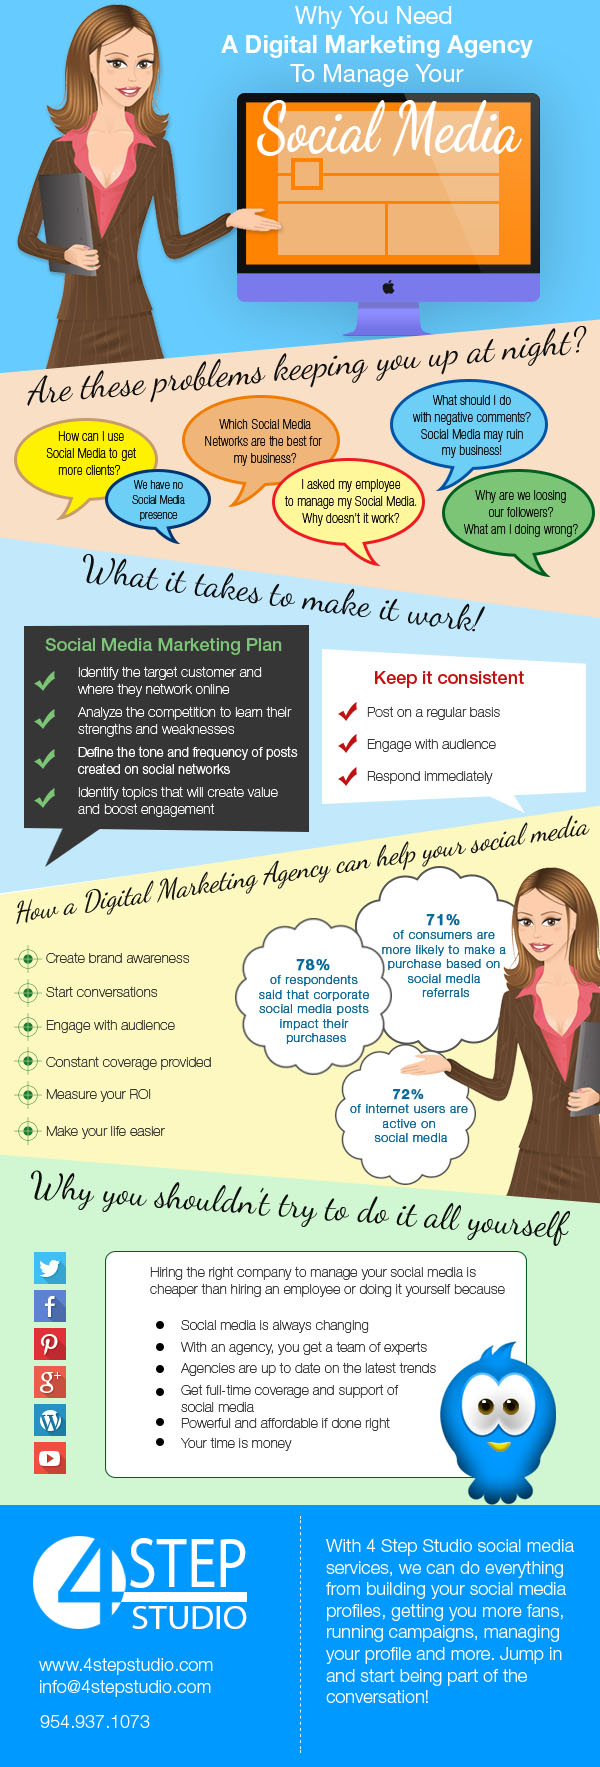 Digital Marketing Agency For Your Social Media